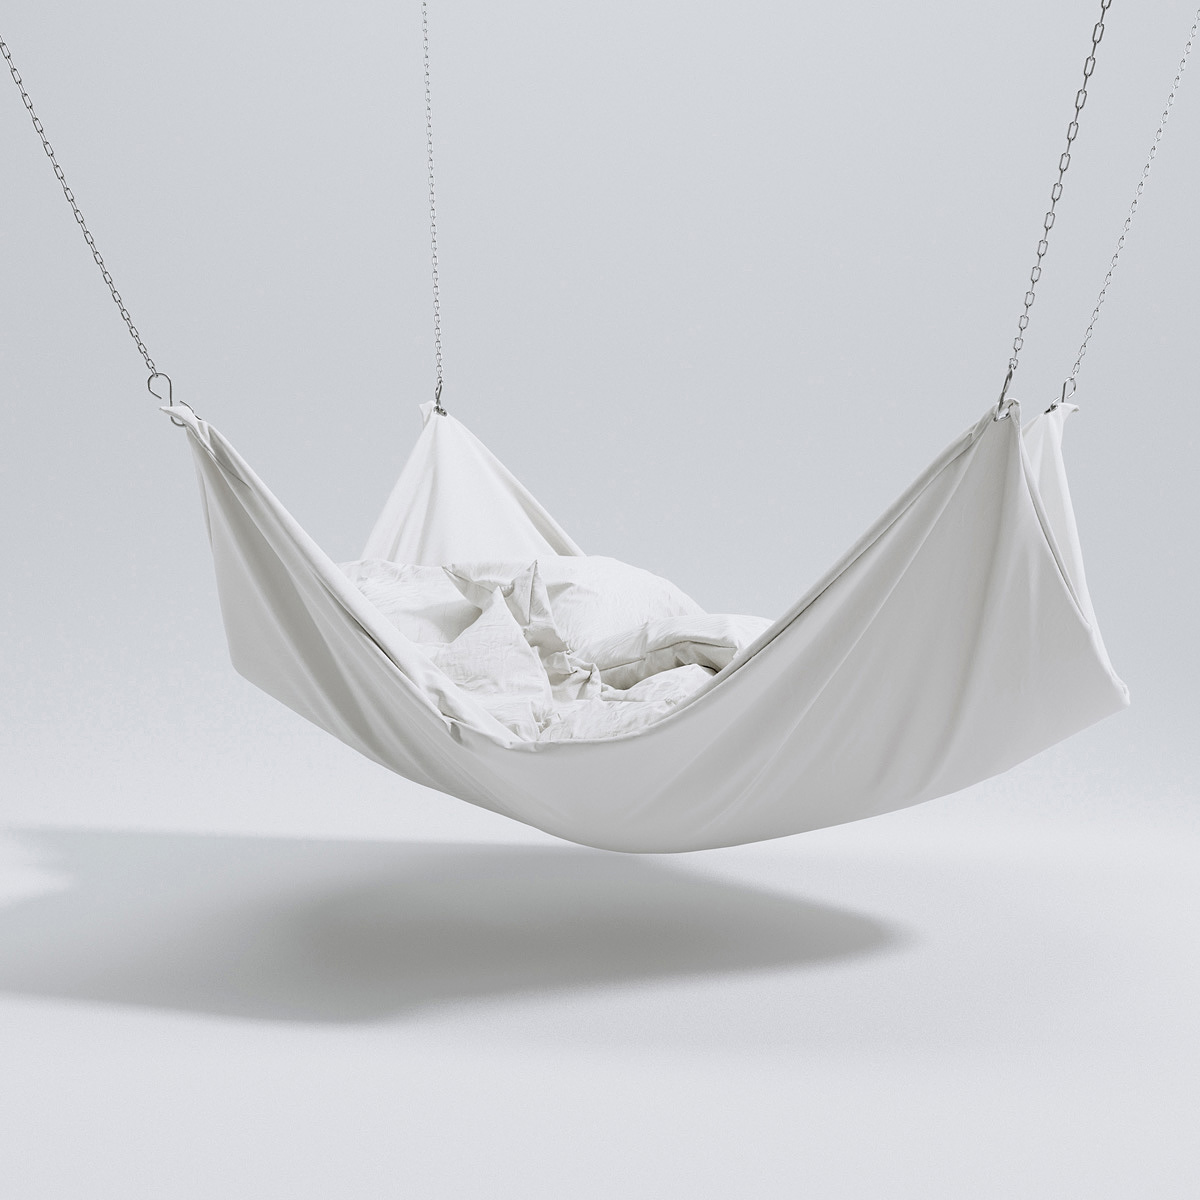 Hammock bed – Triangle Form – 3d models | Scenes